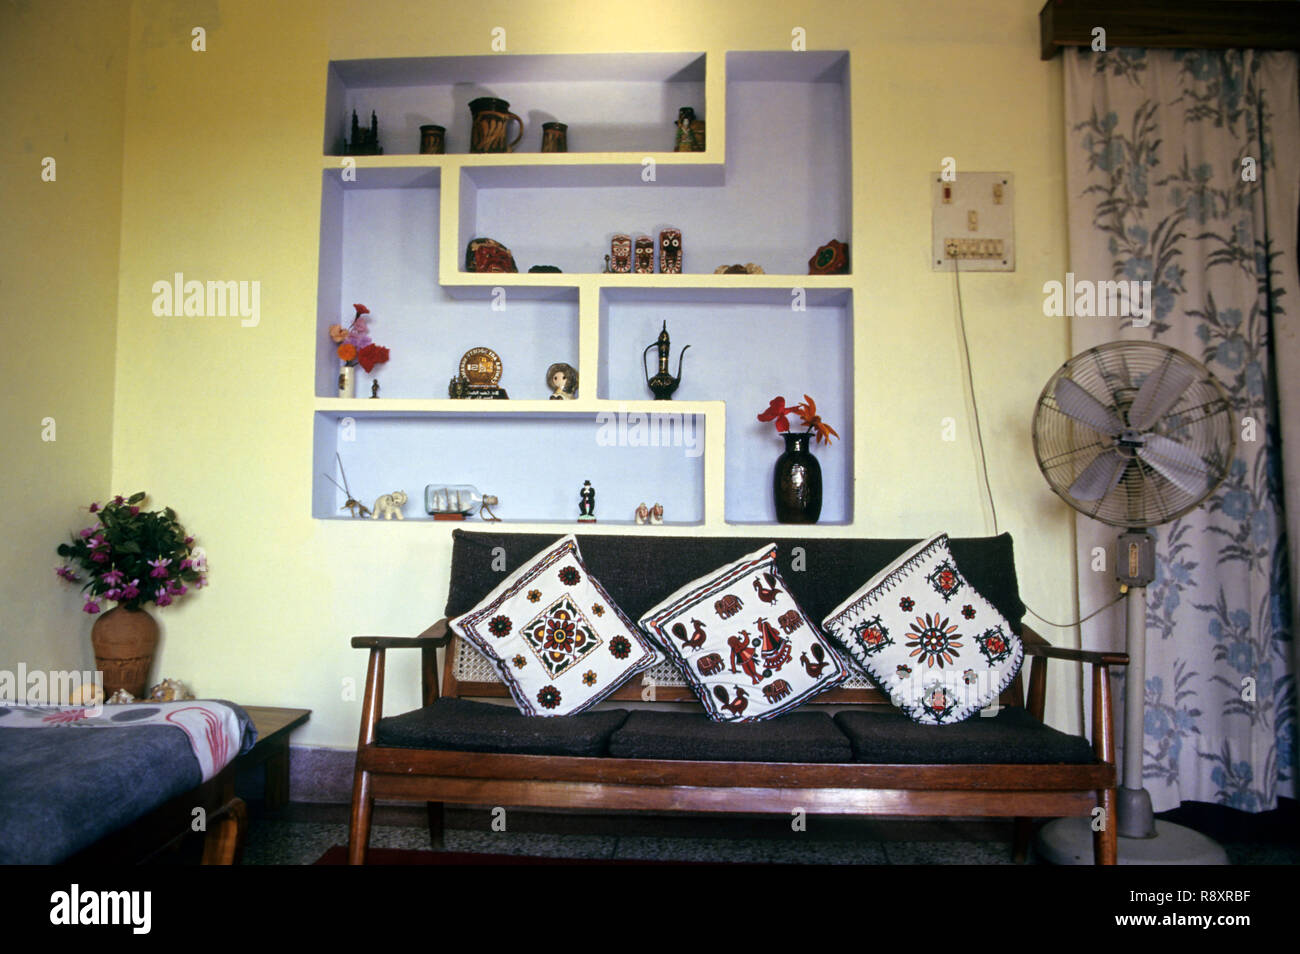 Indian Middle Class Home High Resolution Stock Photography And Images Alamy